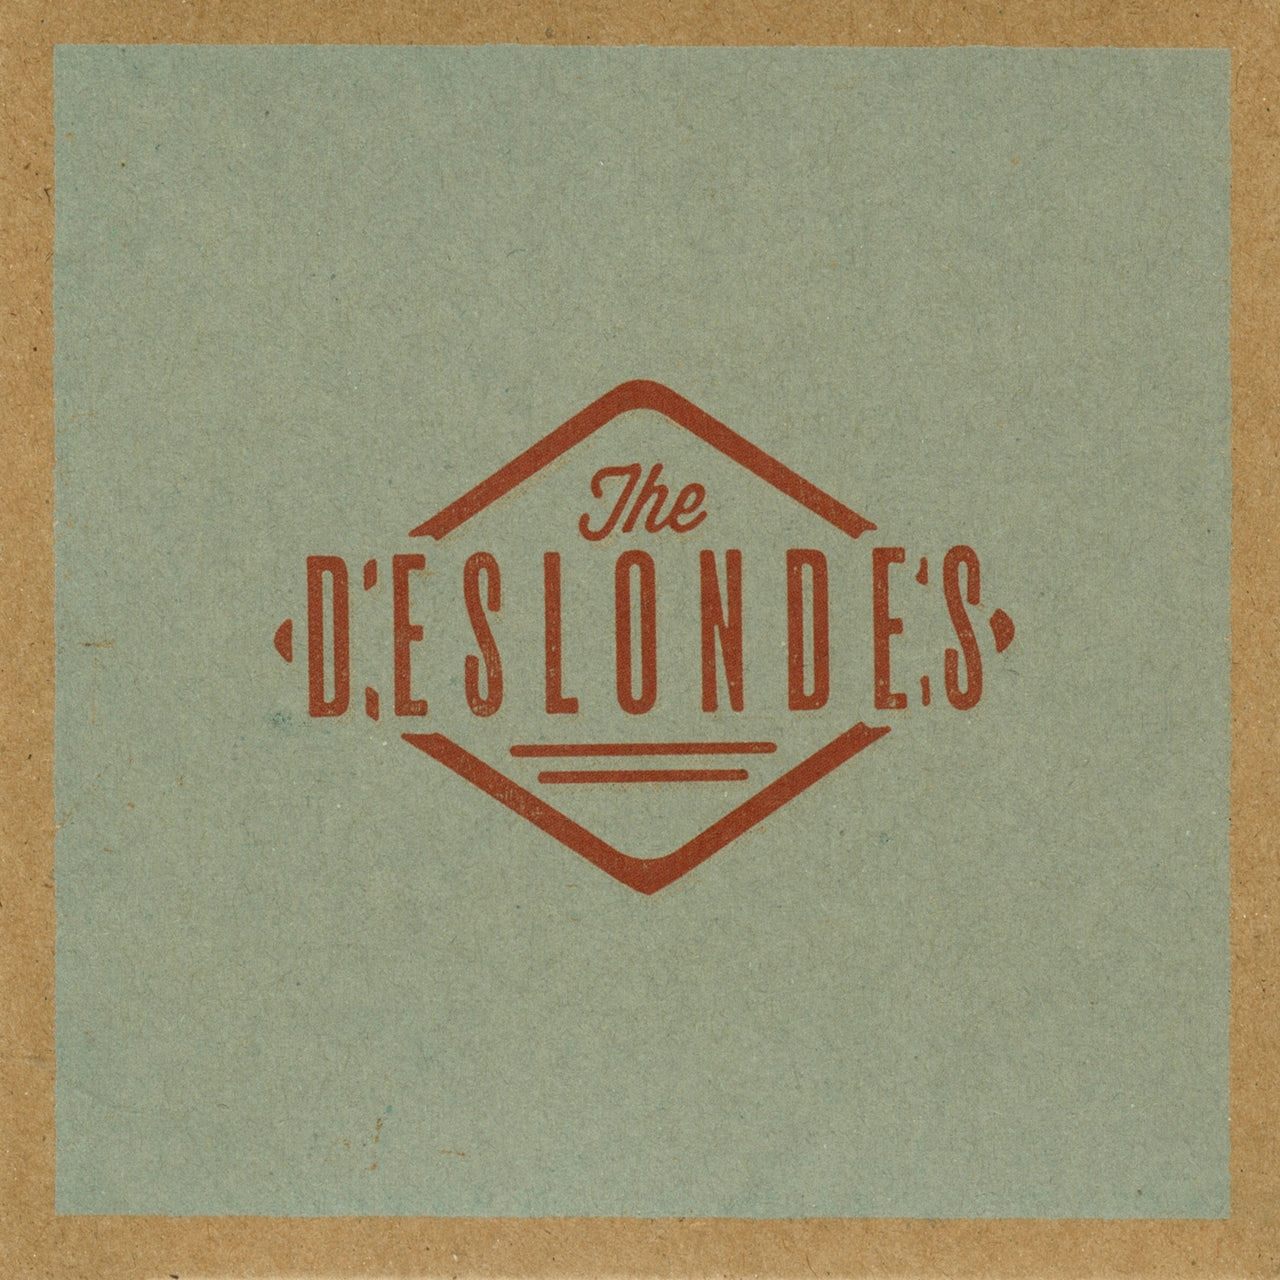 Deslondes (The) : The Deslondes  LP